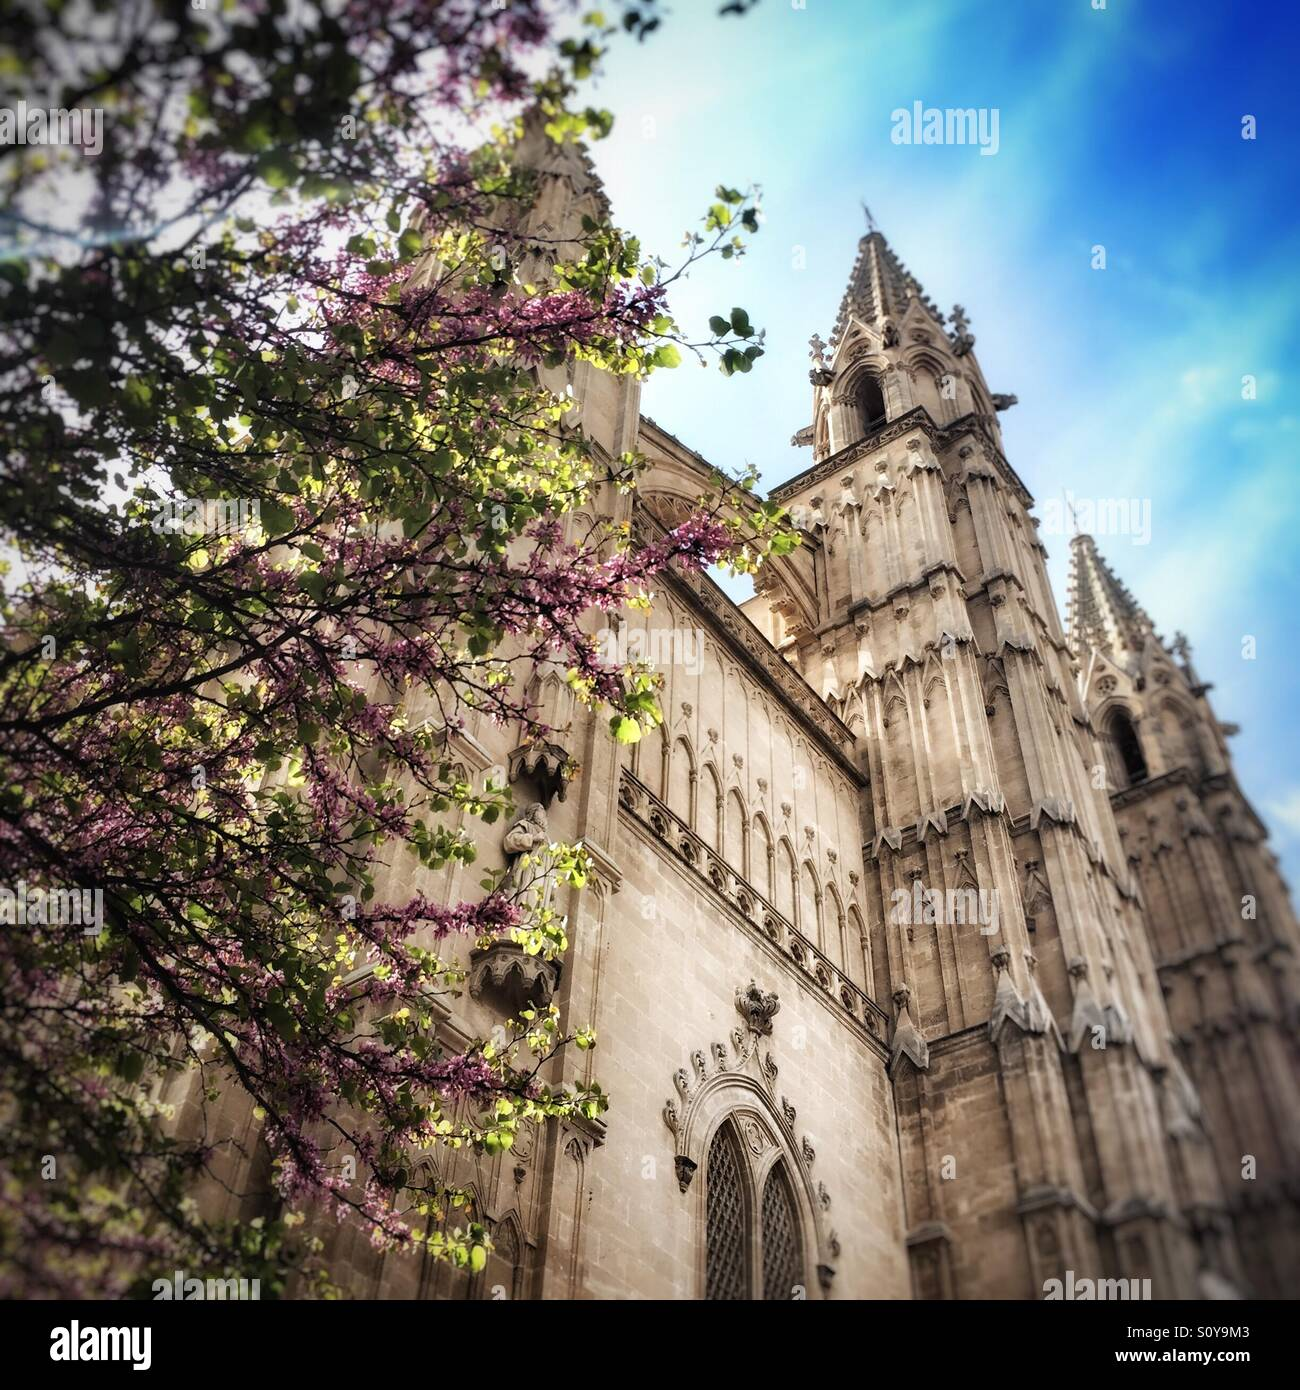 Spring time in Parma, Majorca. Stock Photo